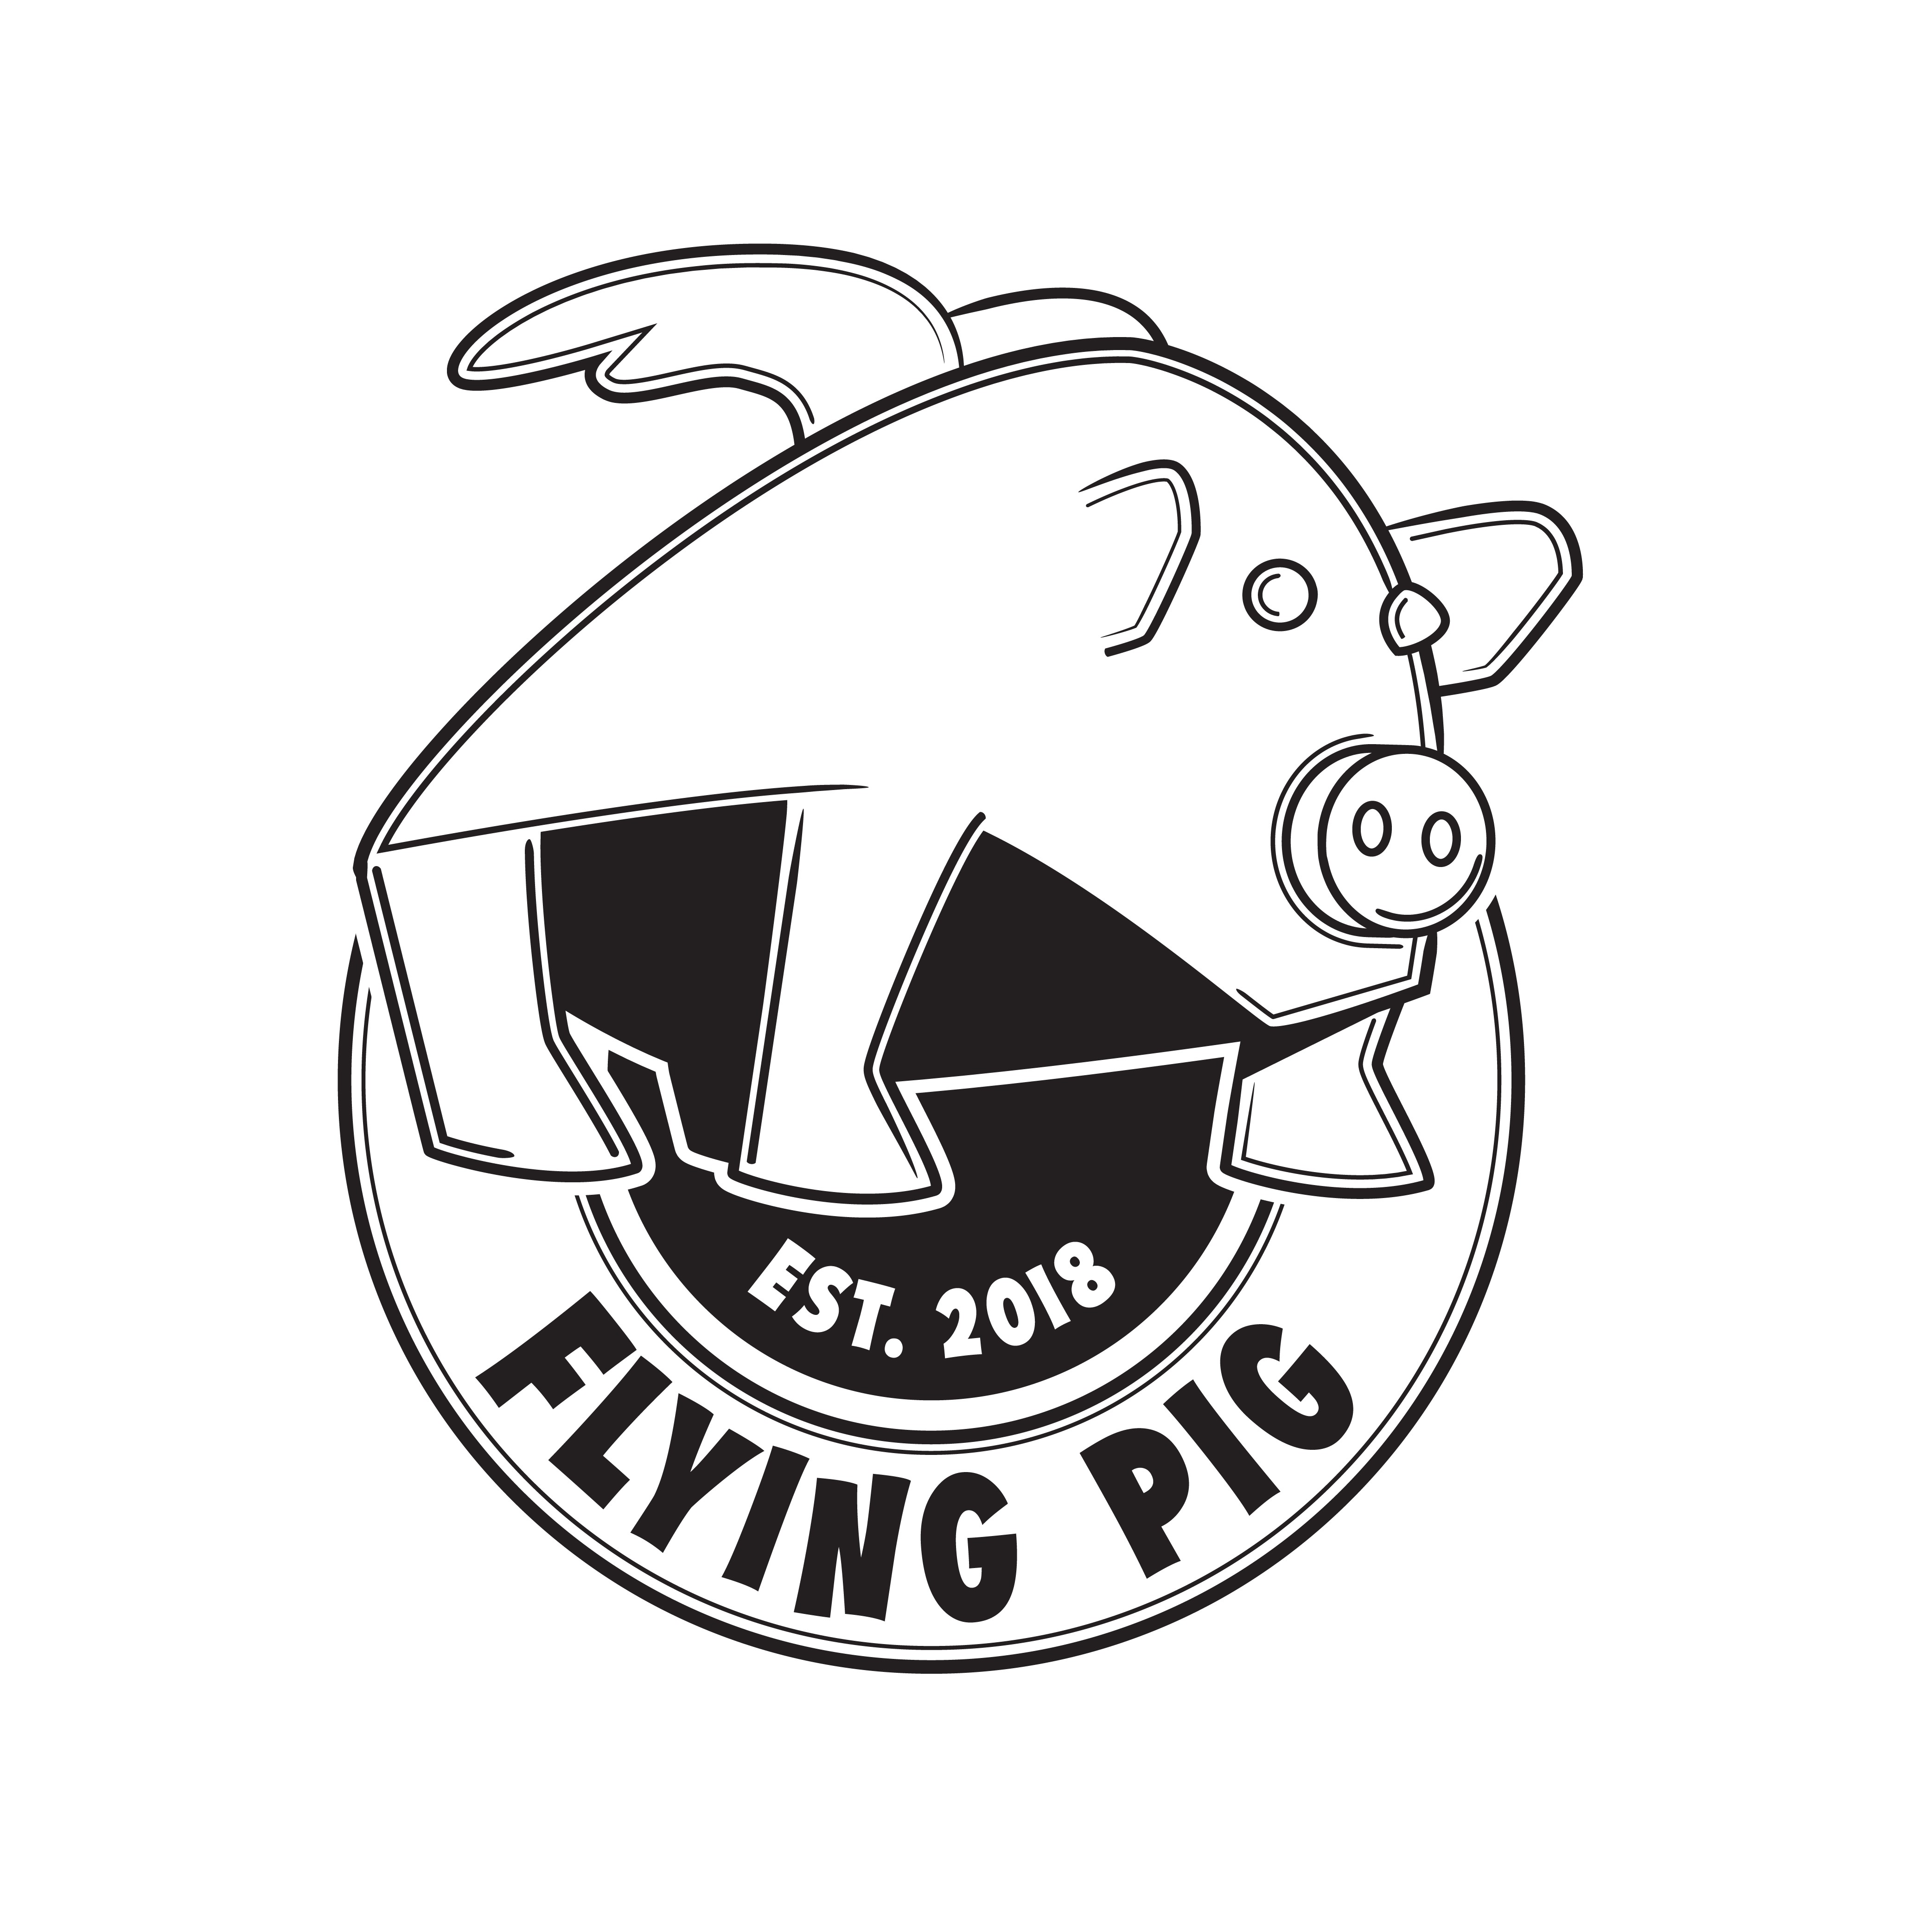 Flying Pig Pig Farm Est. 2018